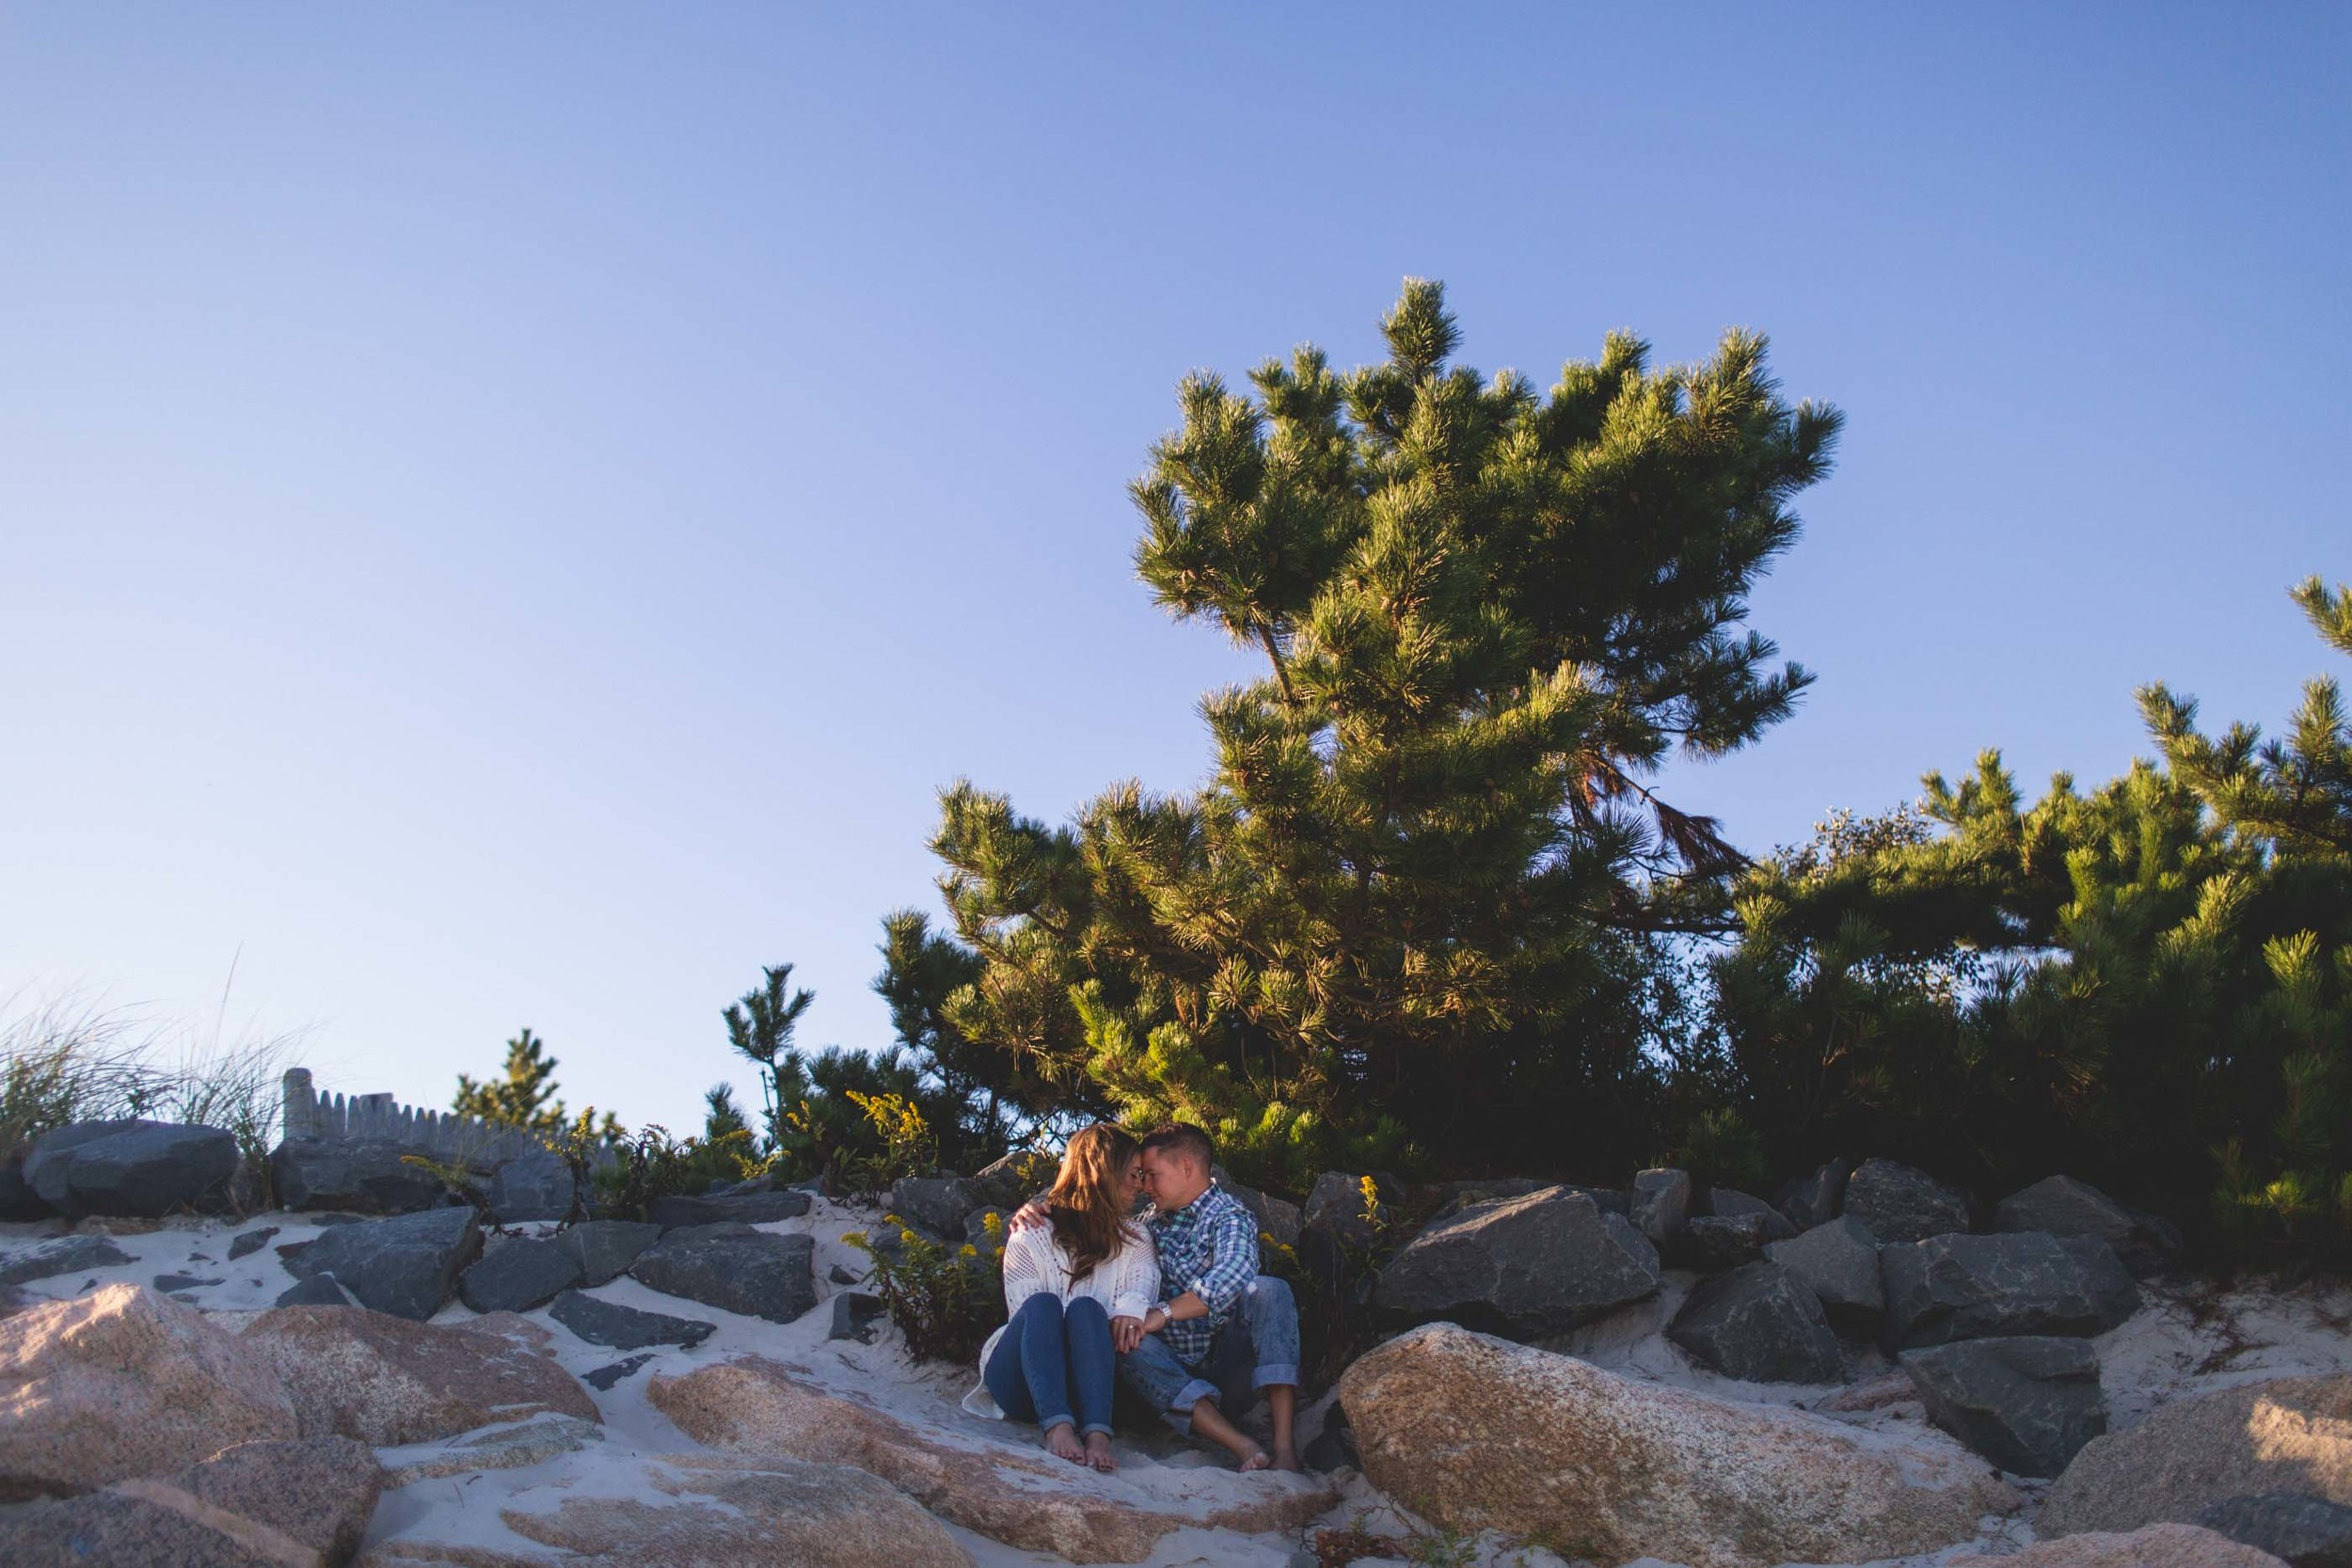 Cape-Cod-Engagement-Photography-9.jpg